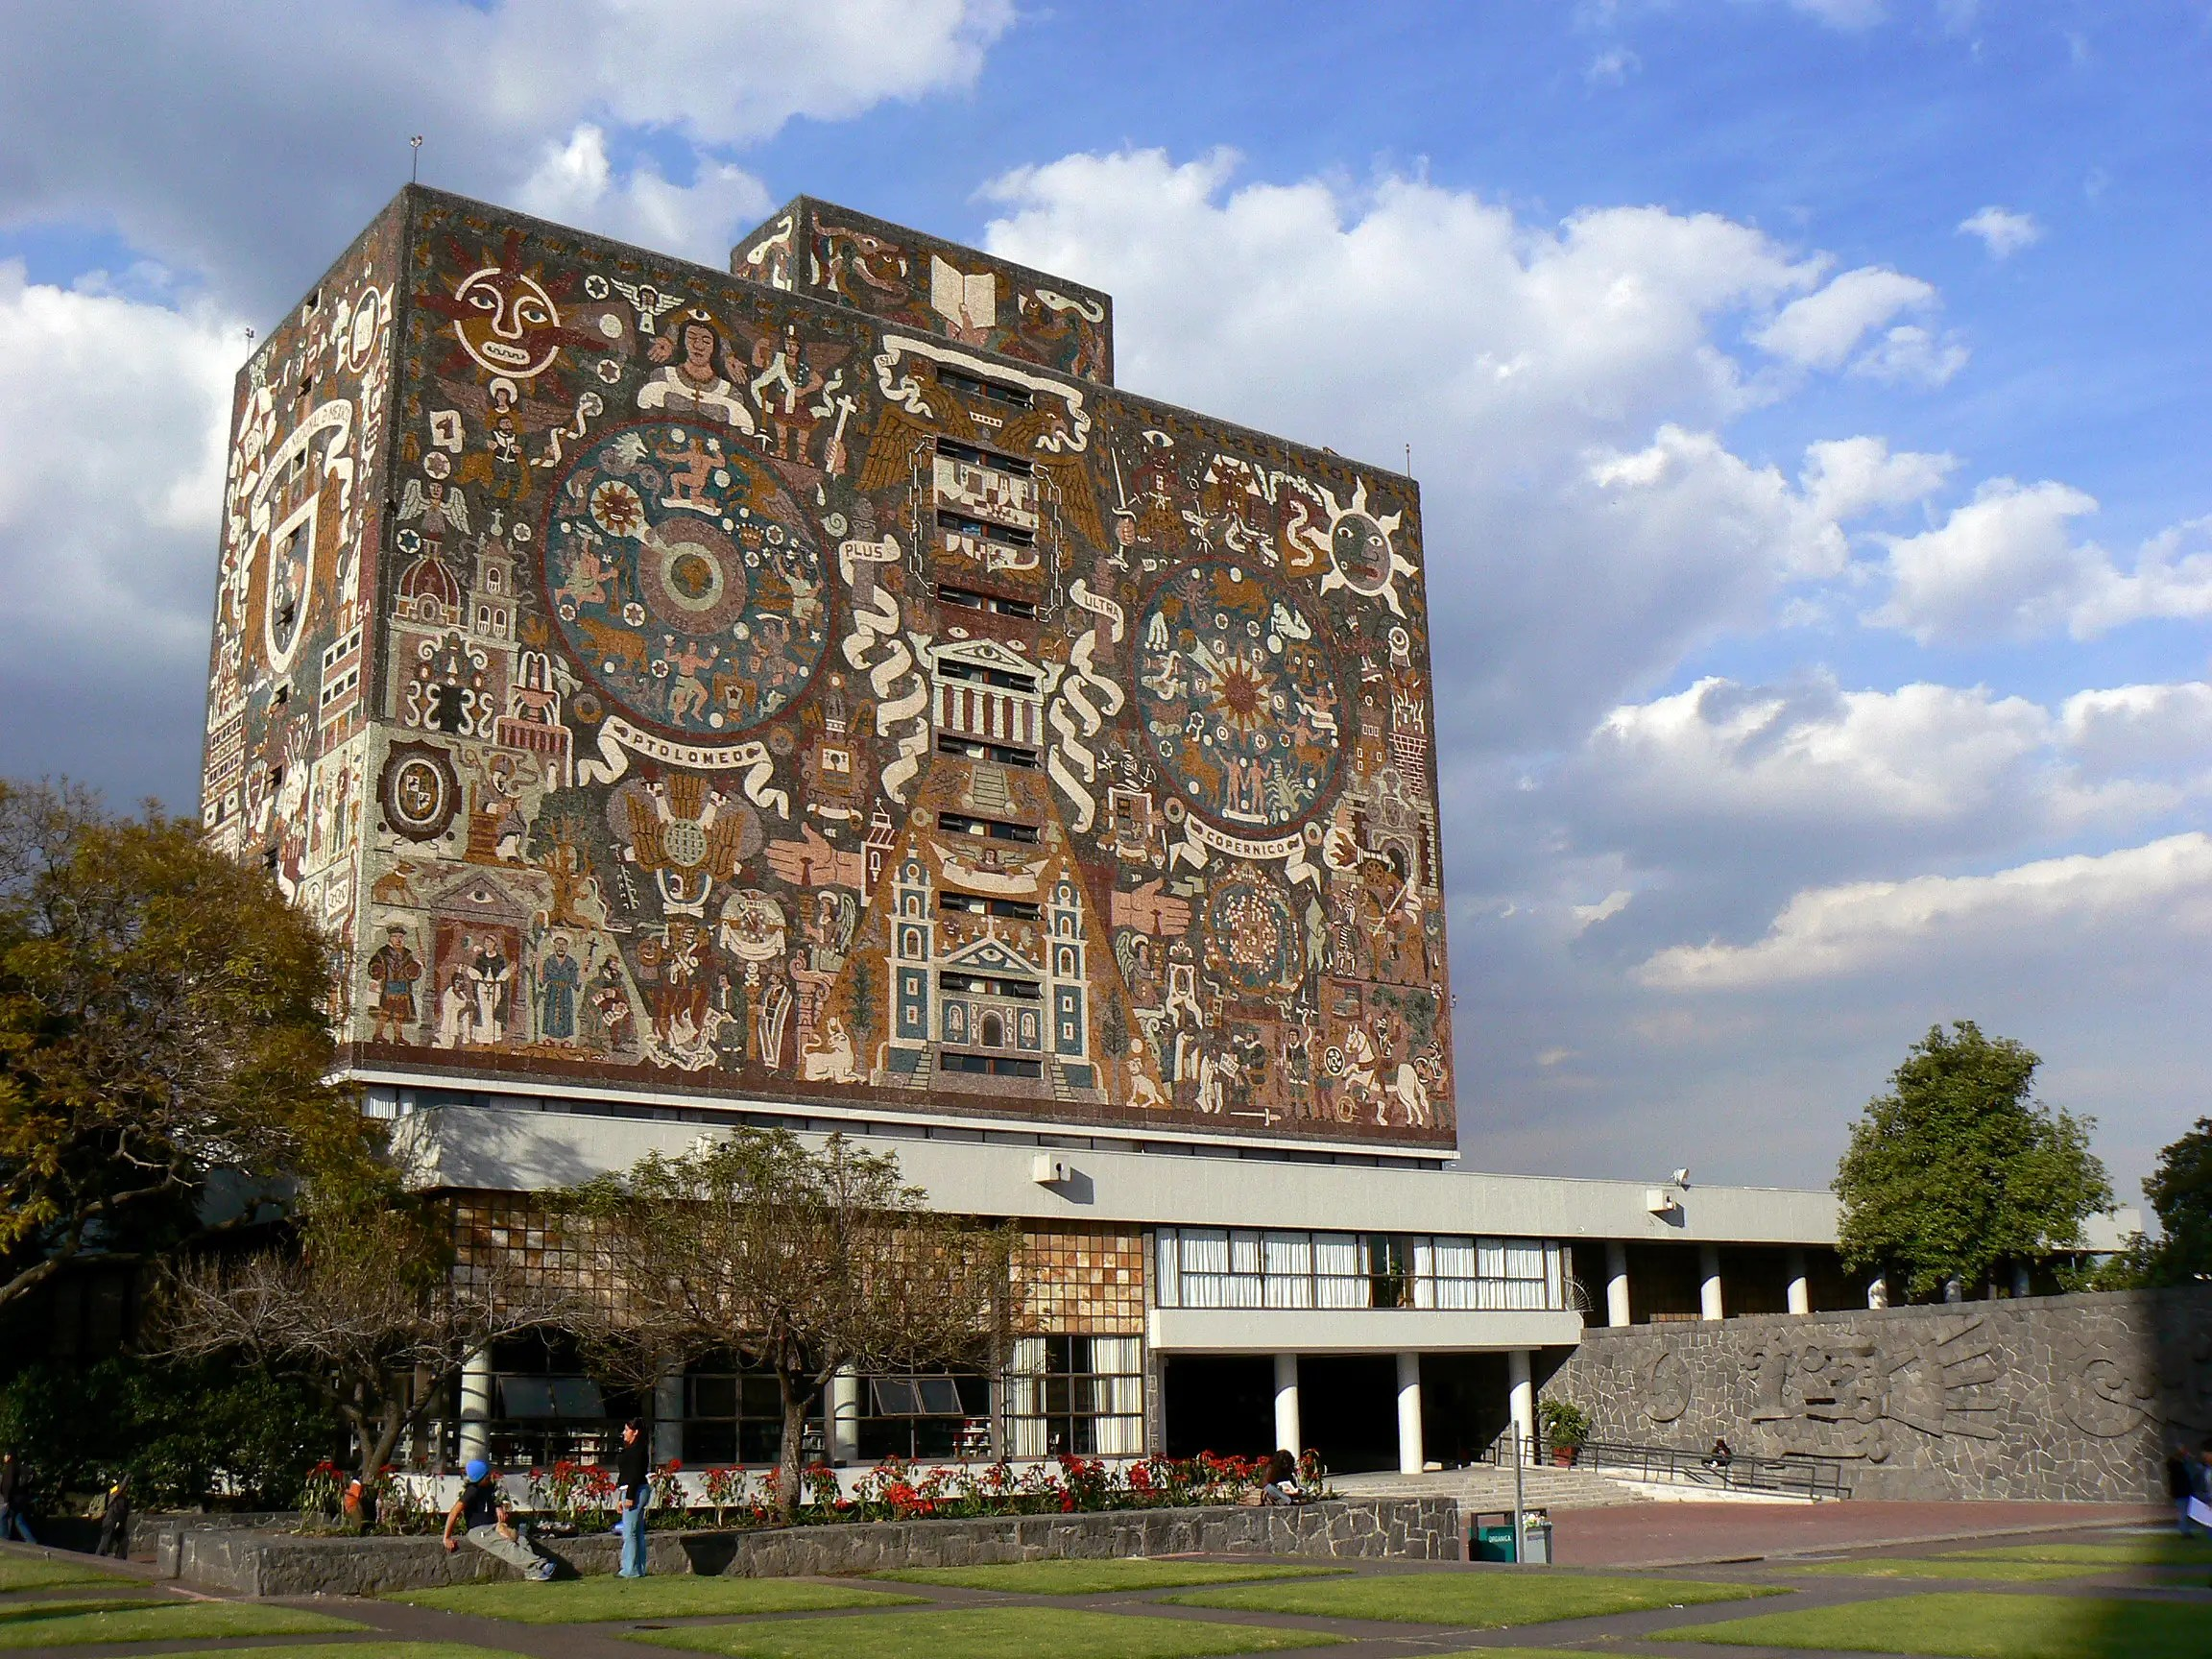 Biblioteca Central, home to 400,000 books at the Universidad Nacional Autónoma de México, opened its doors in April 1956. The outside is covered in a tiled mosaic painted by Juan O'Gorman. Each wall represents a part of Mexico's past: pre-Hispanic, colonial, contemporary and the university's place in modern Mexico.